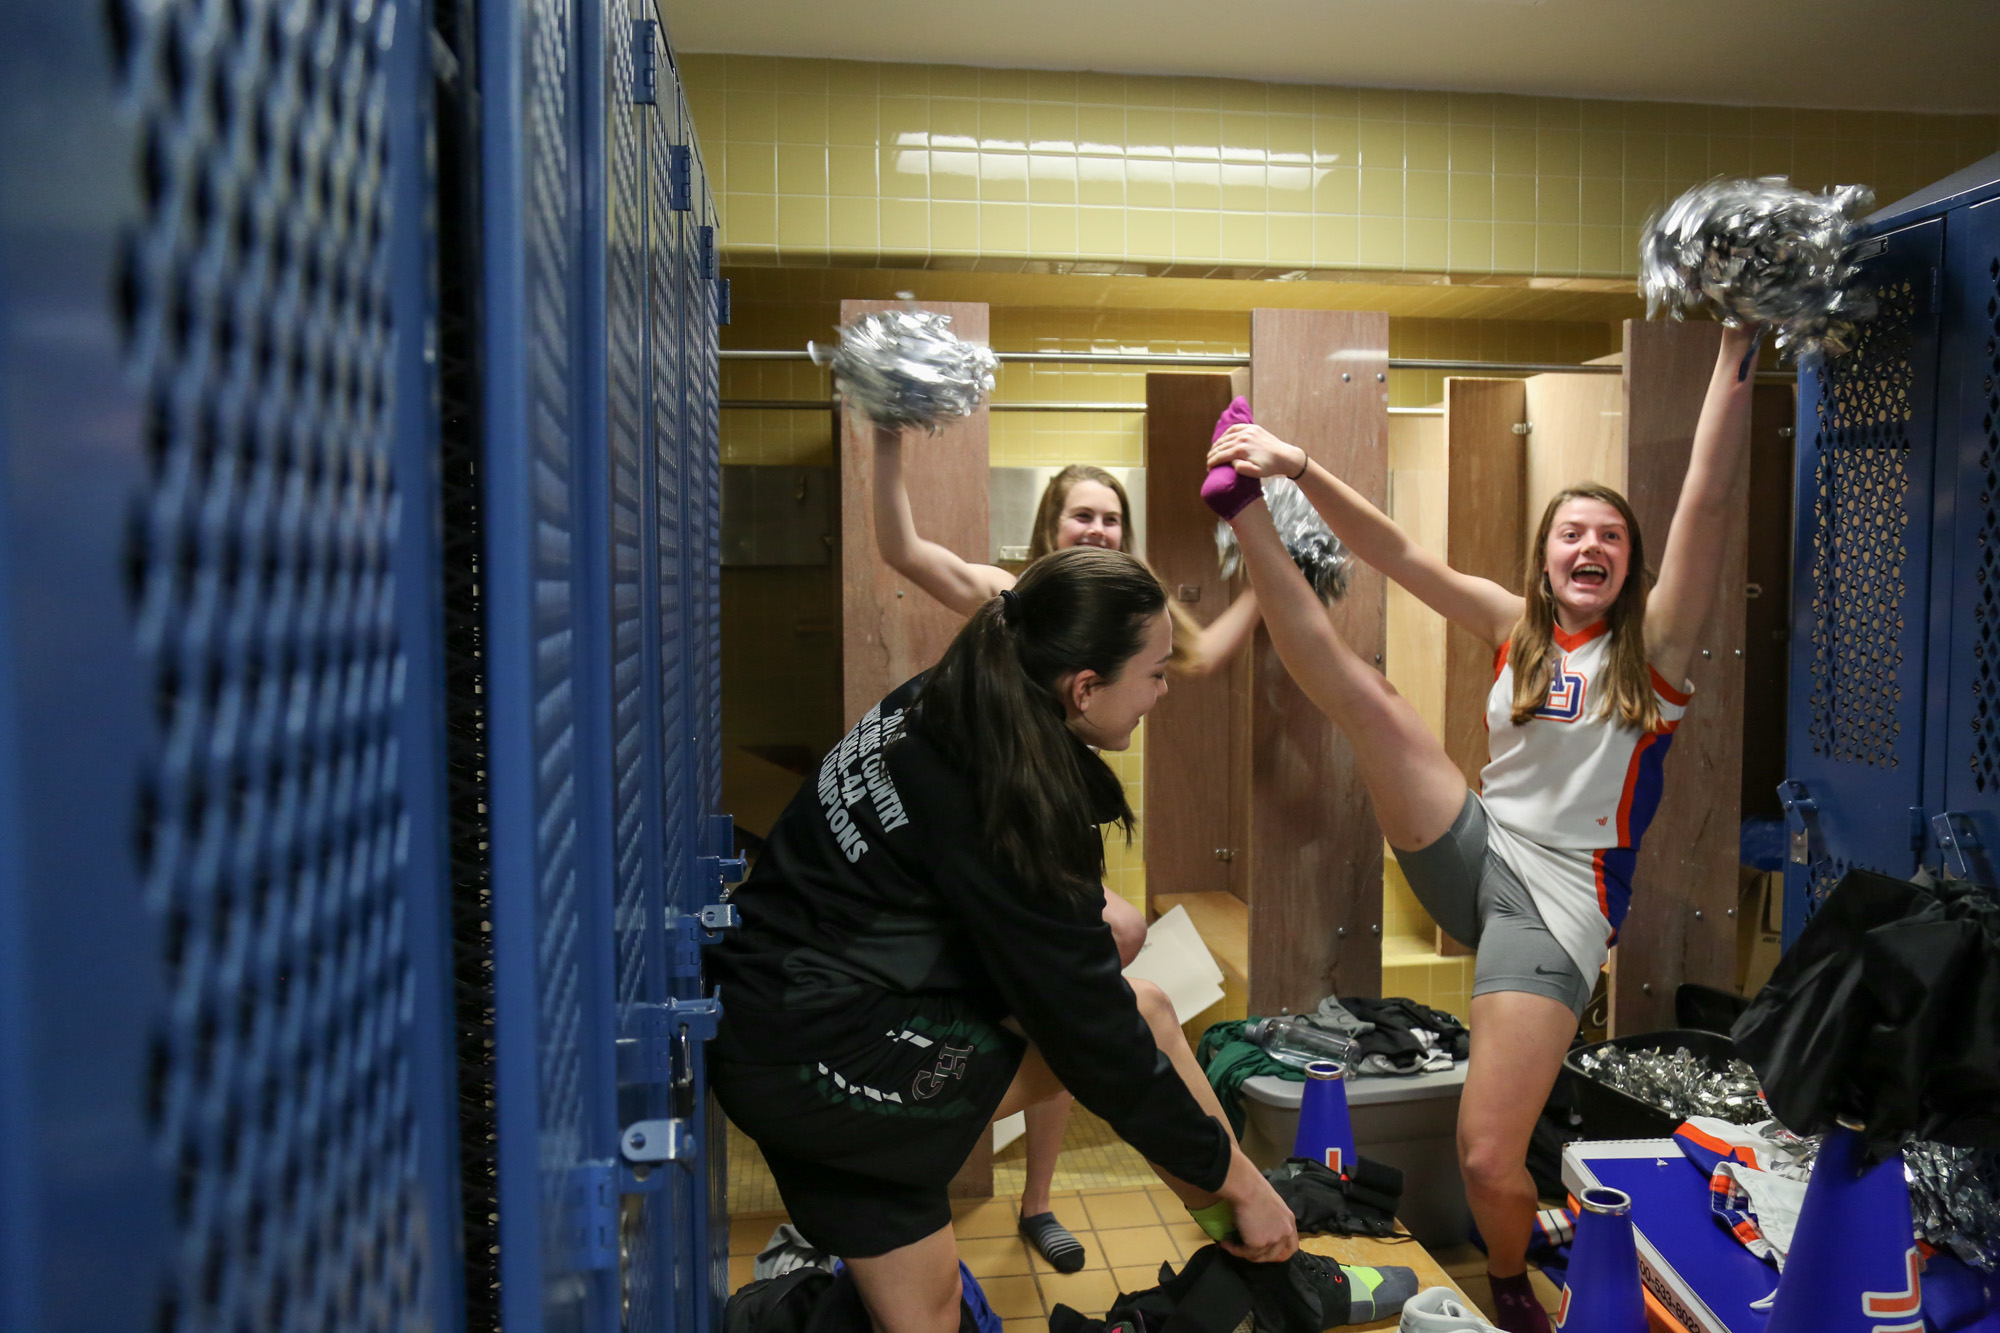 Green Hope's Emily Schoeffler and Catherine Holbrook dance for fun in the locker room before their game with Athens Drive High School on Feb.10, 2017.